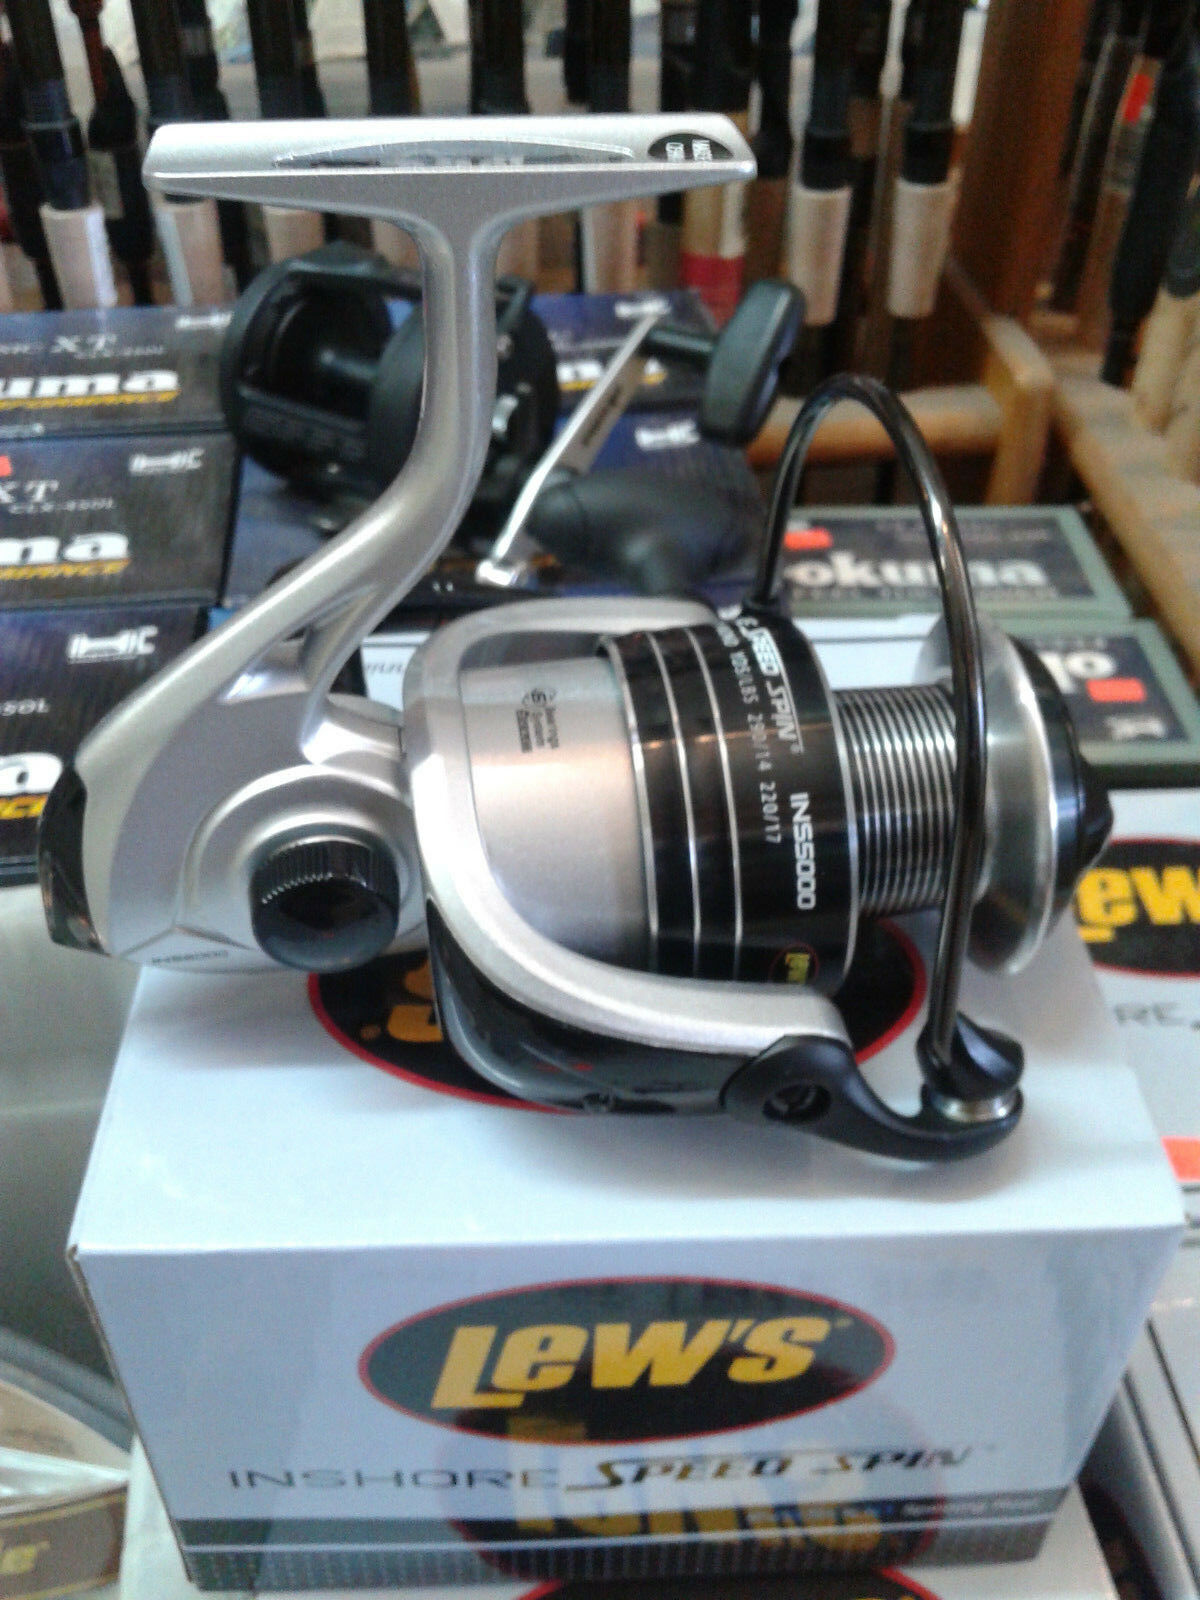 Lew's INS 5000 6.1 1 Inshore Speed Spin Saltwater Spinning Reel